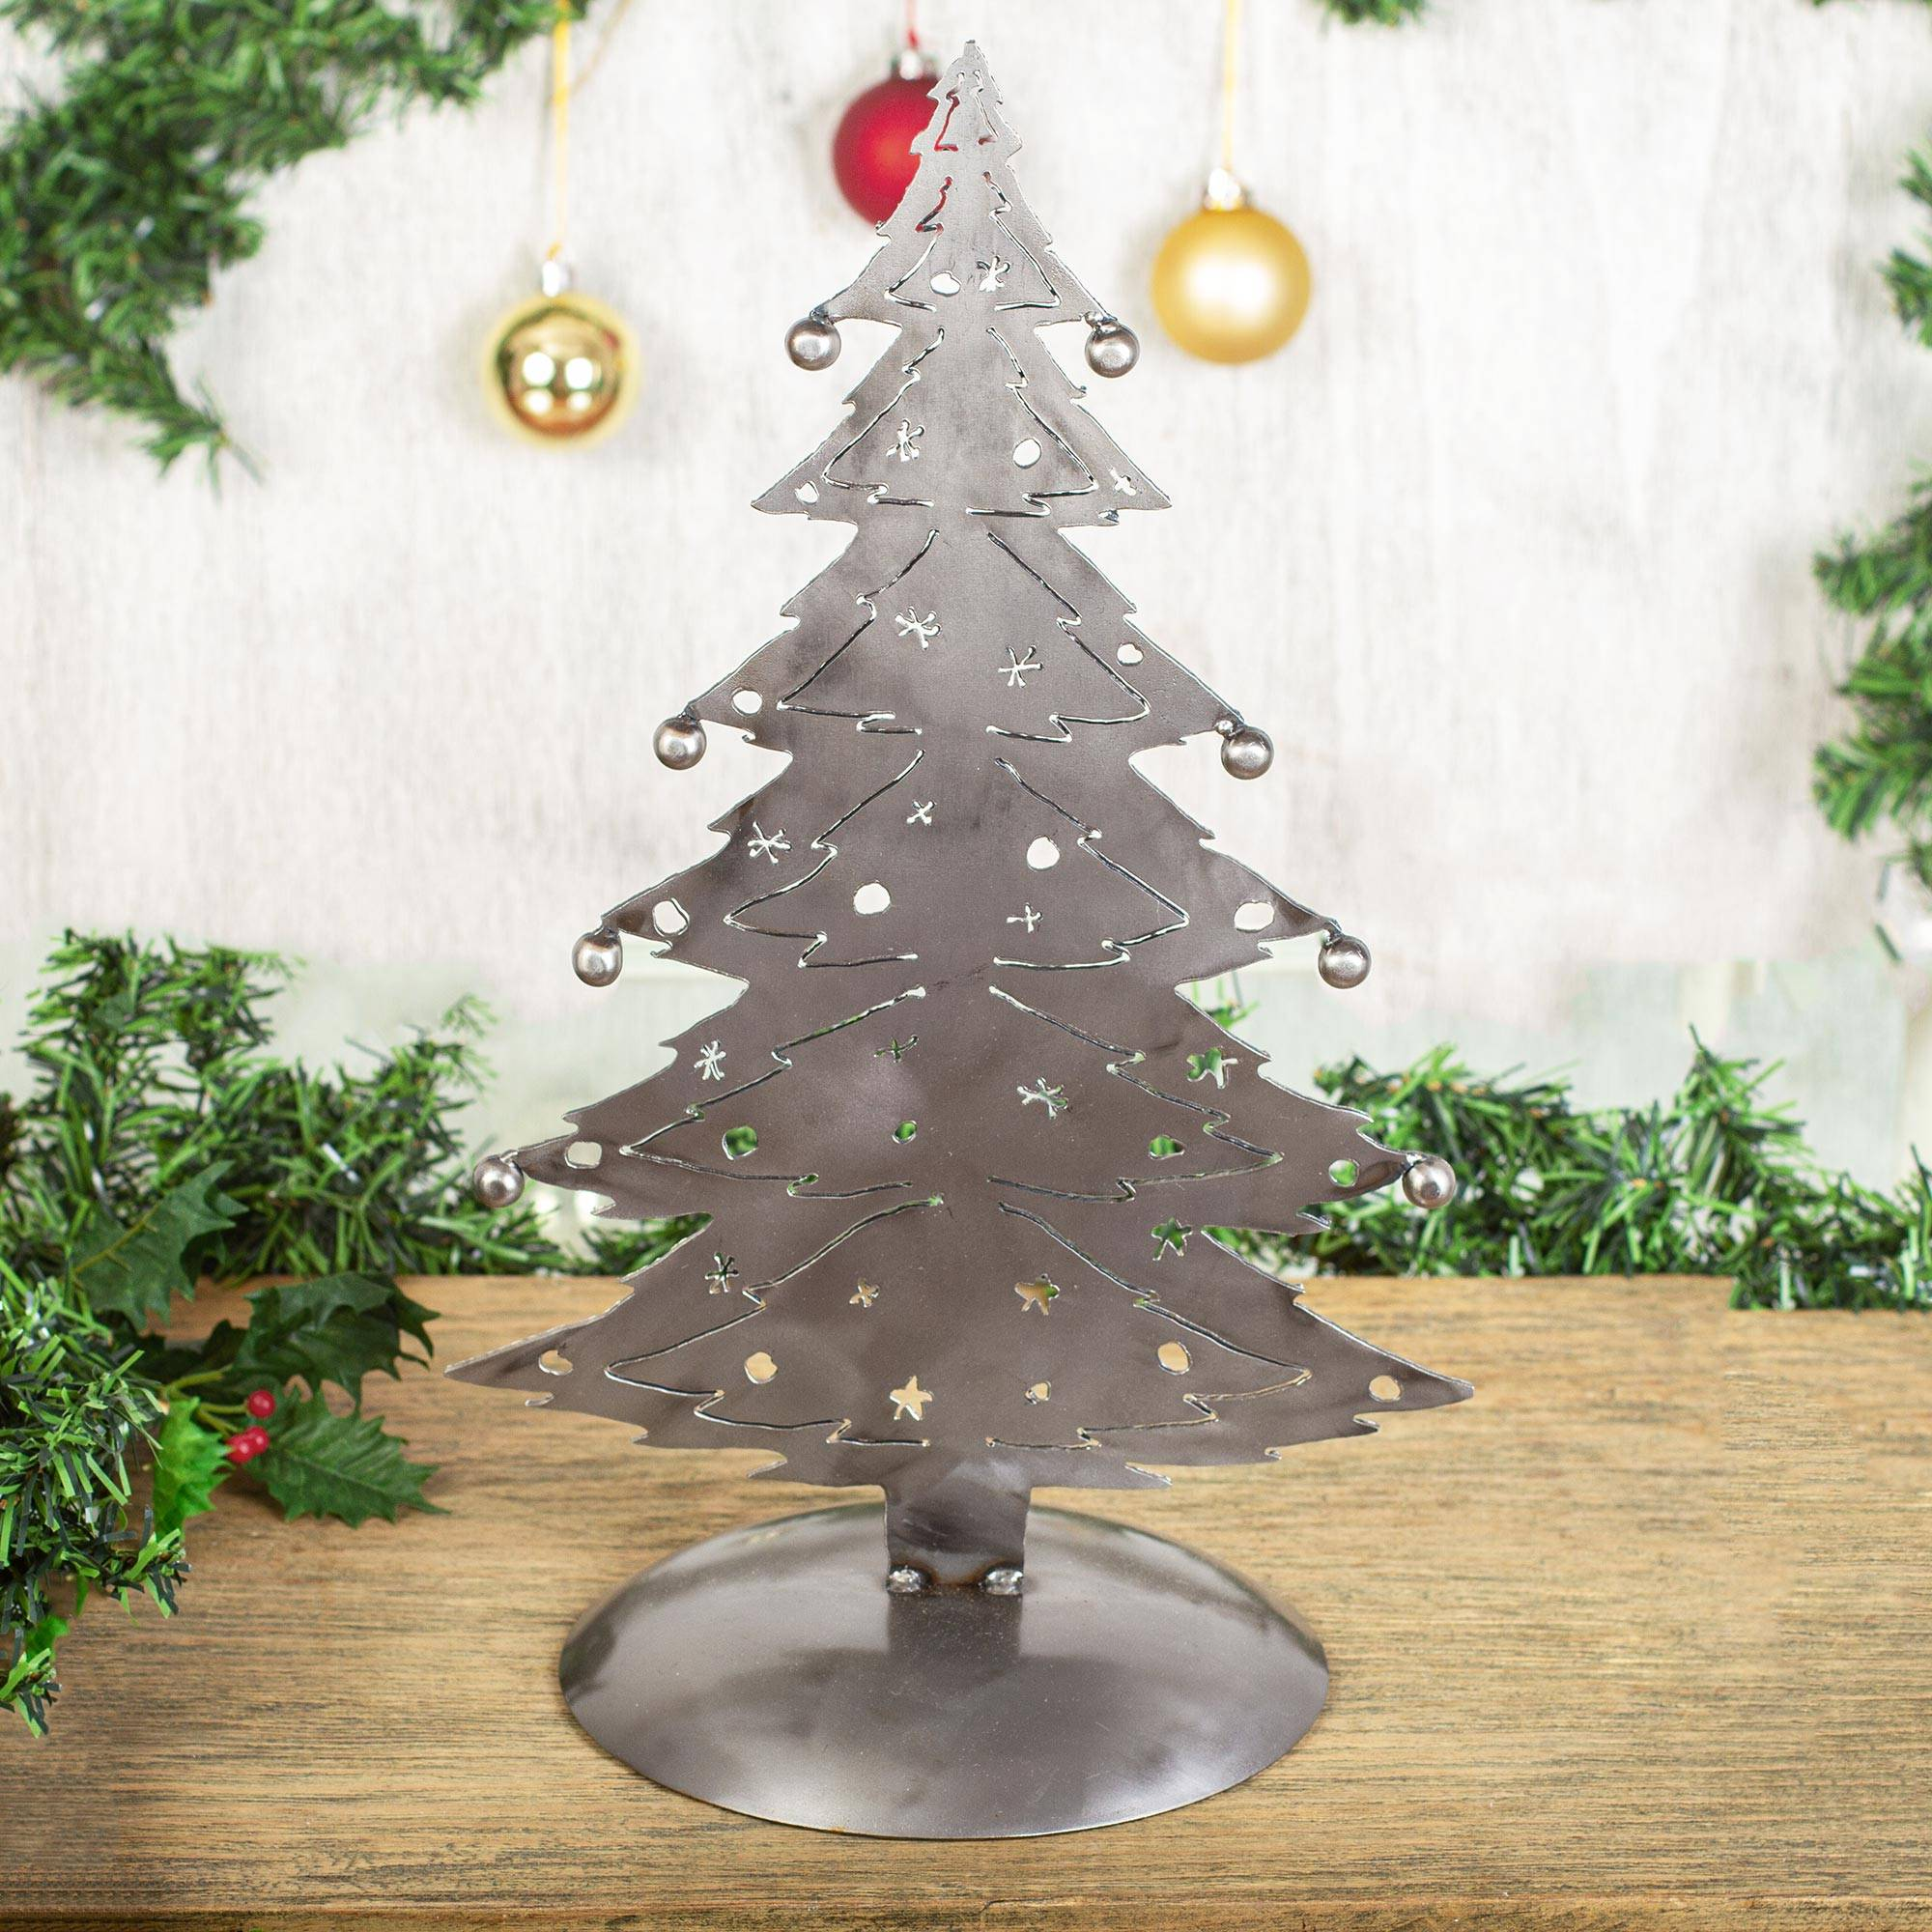 Metal Christmas Tree.Recycled Metal Christmas Tree Sculpture From Mexico Christmas Tree Gleam